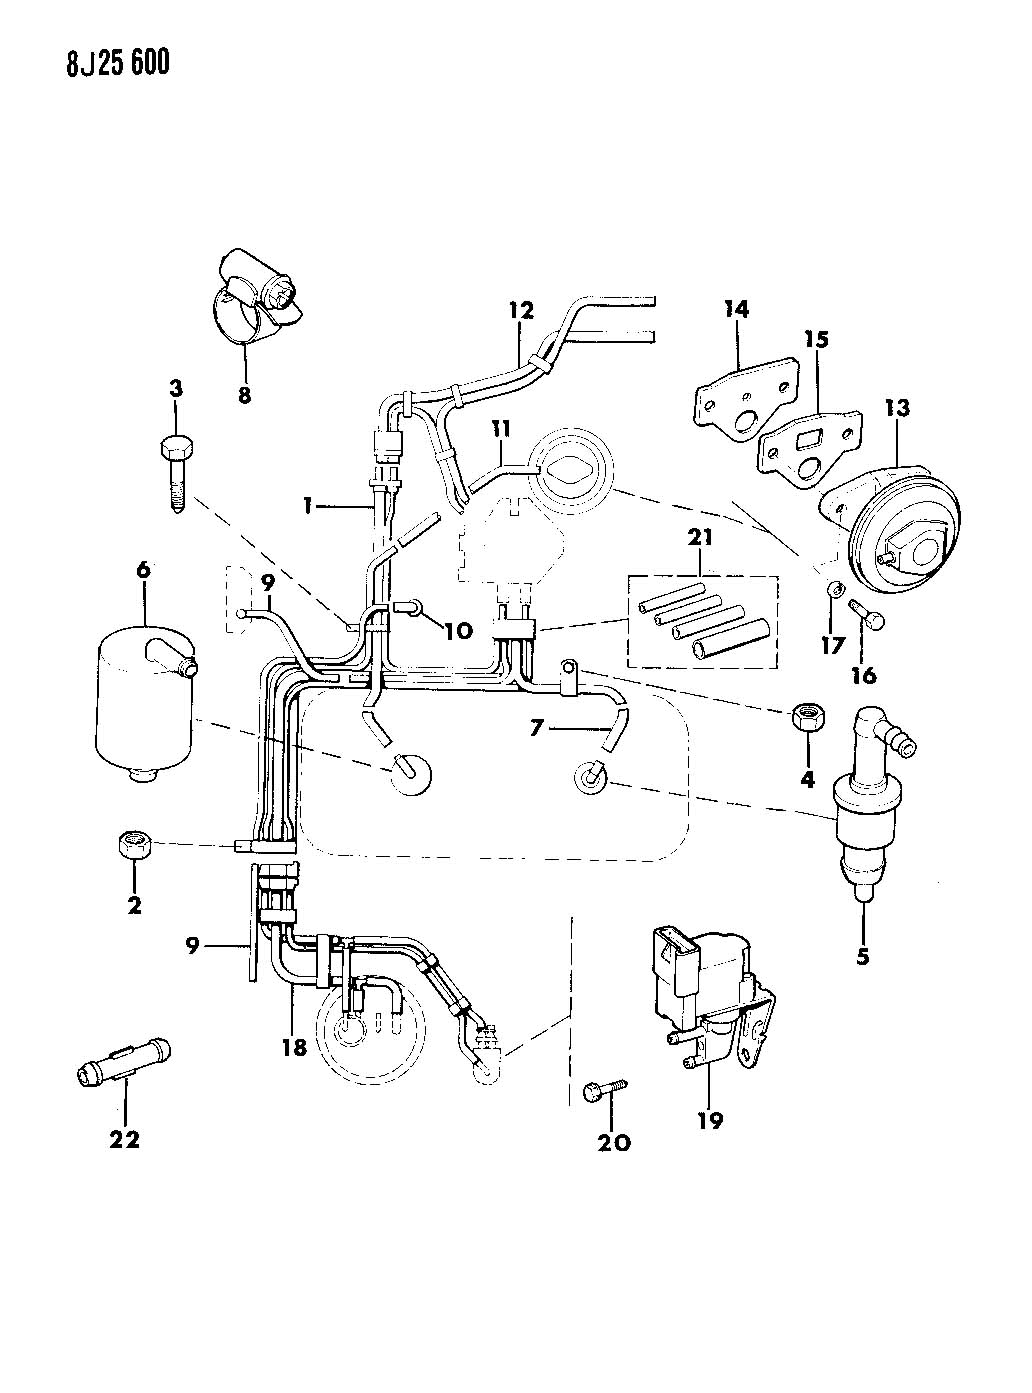 1990 Jeep Wrangler 2 5 Engine Diagram Trusted Wiring Diagrams 2.5L Chevy Engine  Diagram 2 5l Jeep Engine Diagram